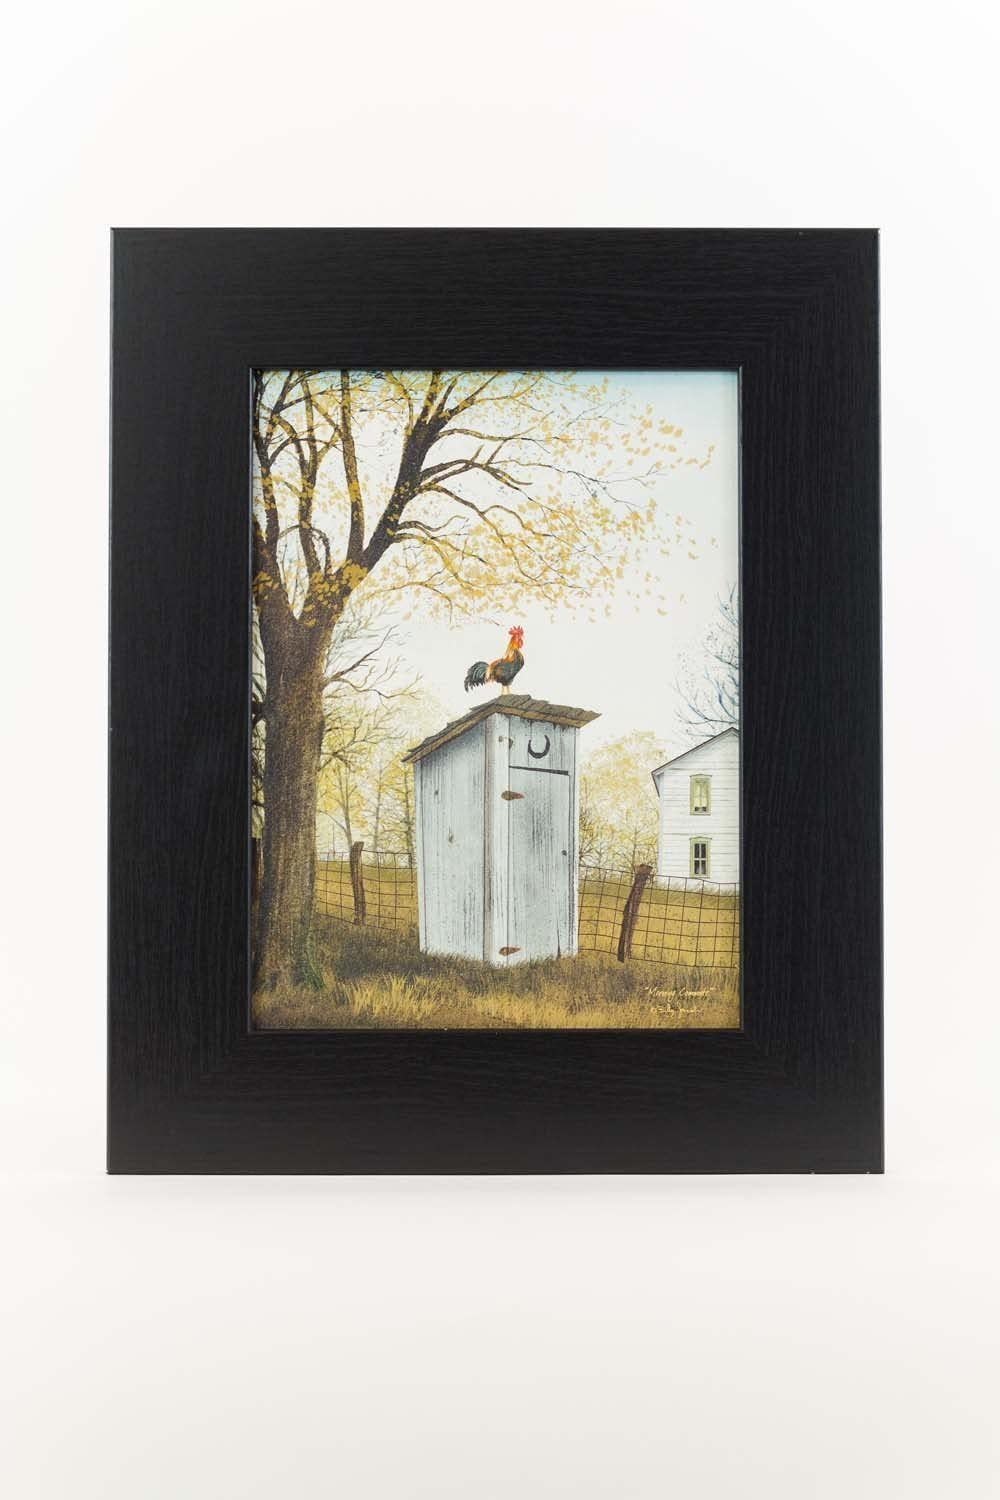 Summer Snow Morning Commute Rooster Outhouse Bathroom Country Billy Jacobs Framed Art Decor 13x16